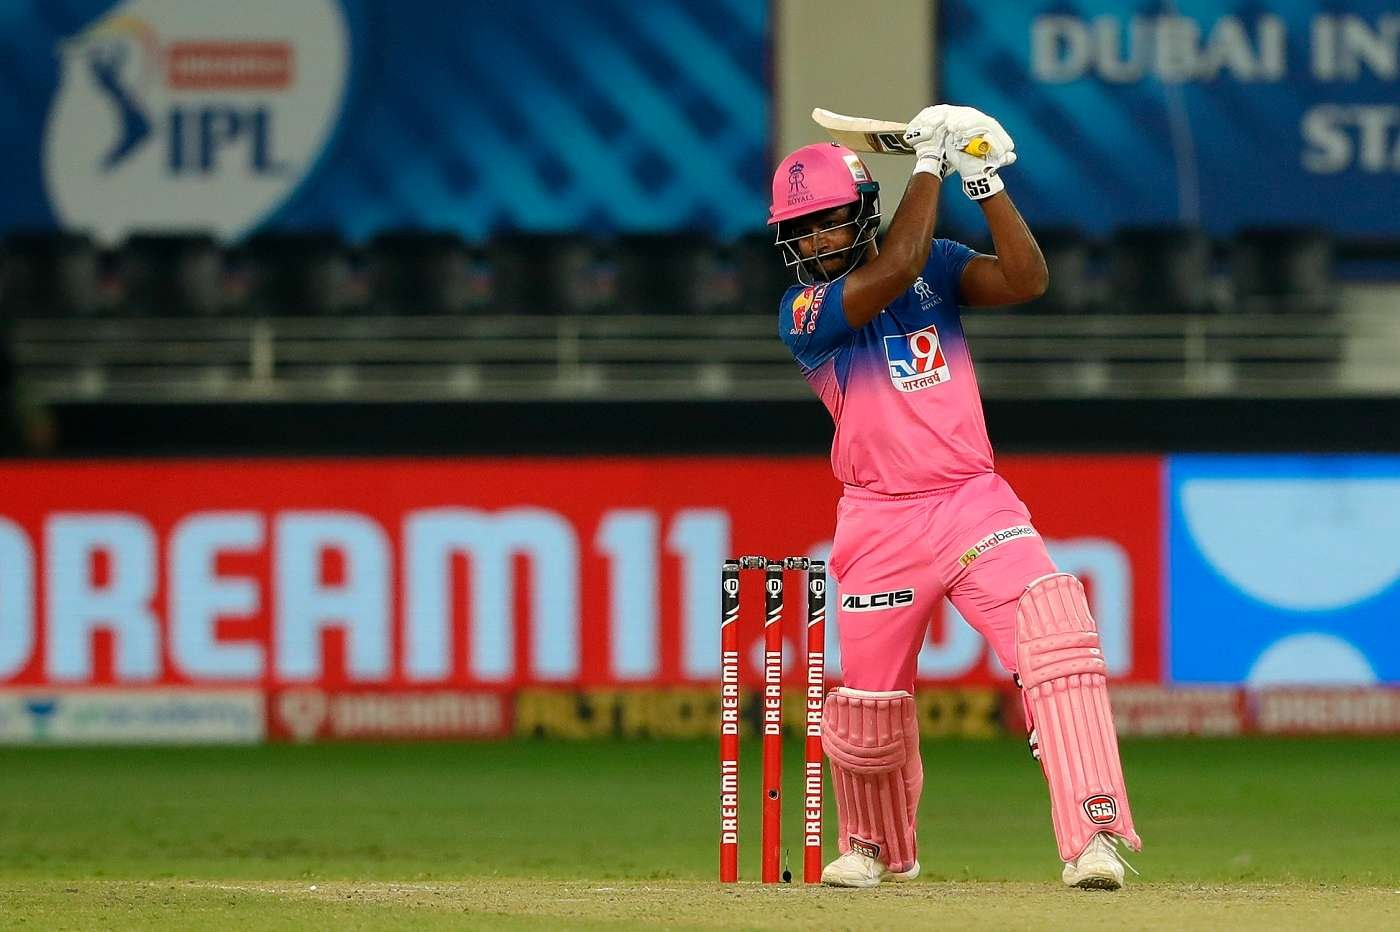 Rajasthan royals release steve smith sanju samson will be the new captain